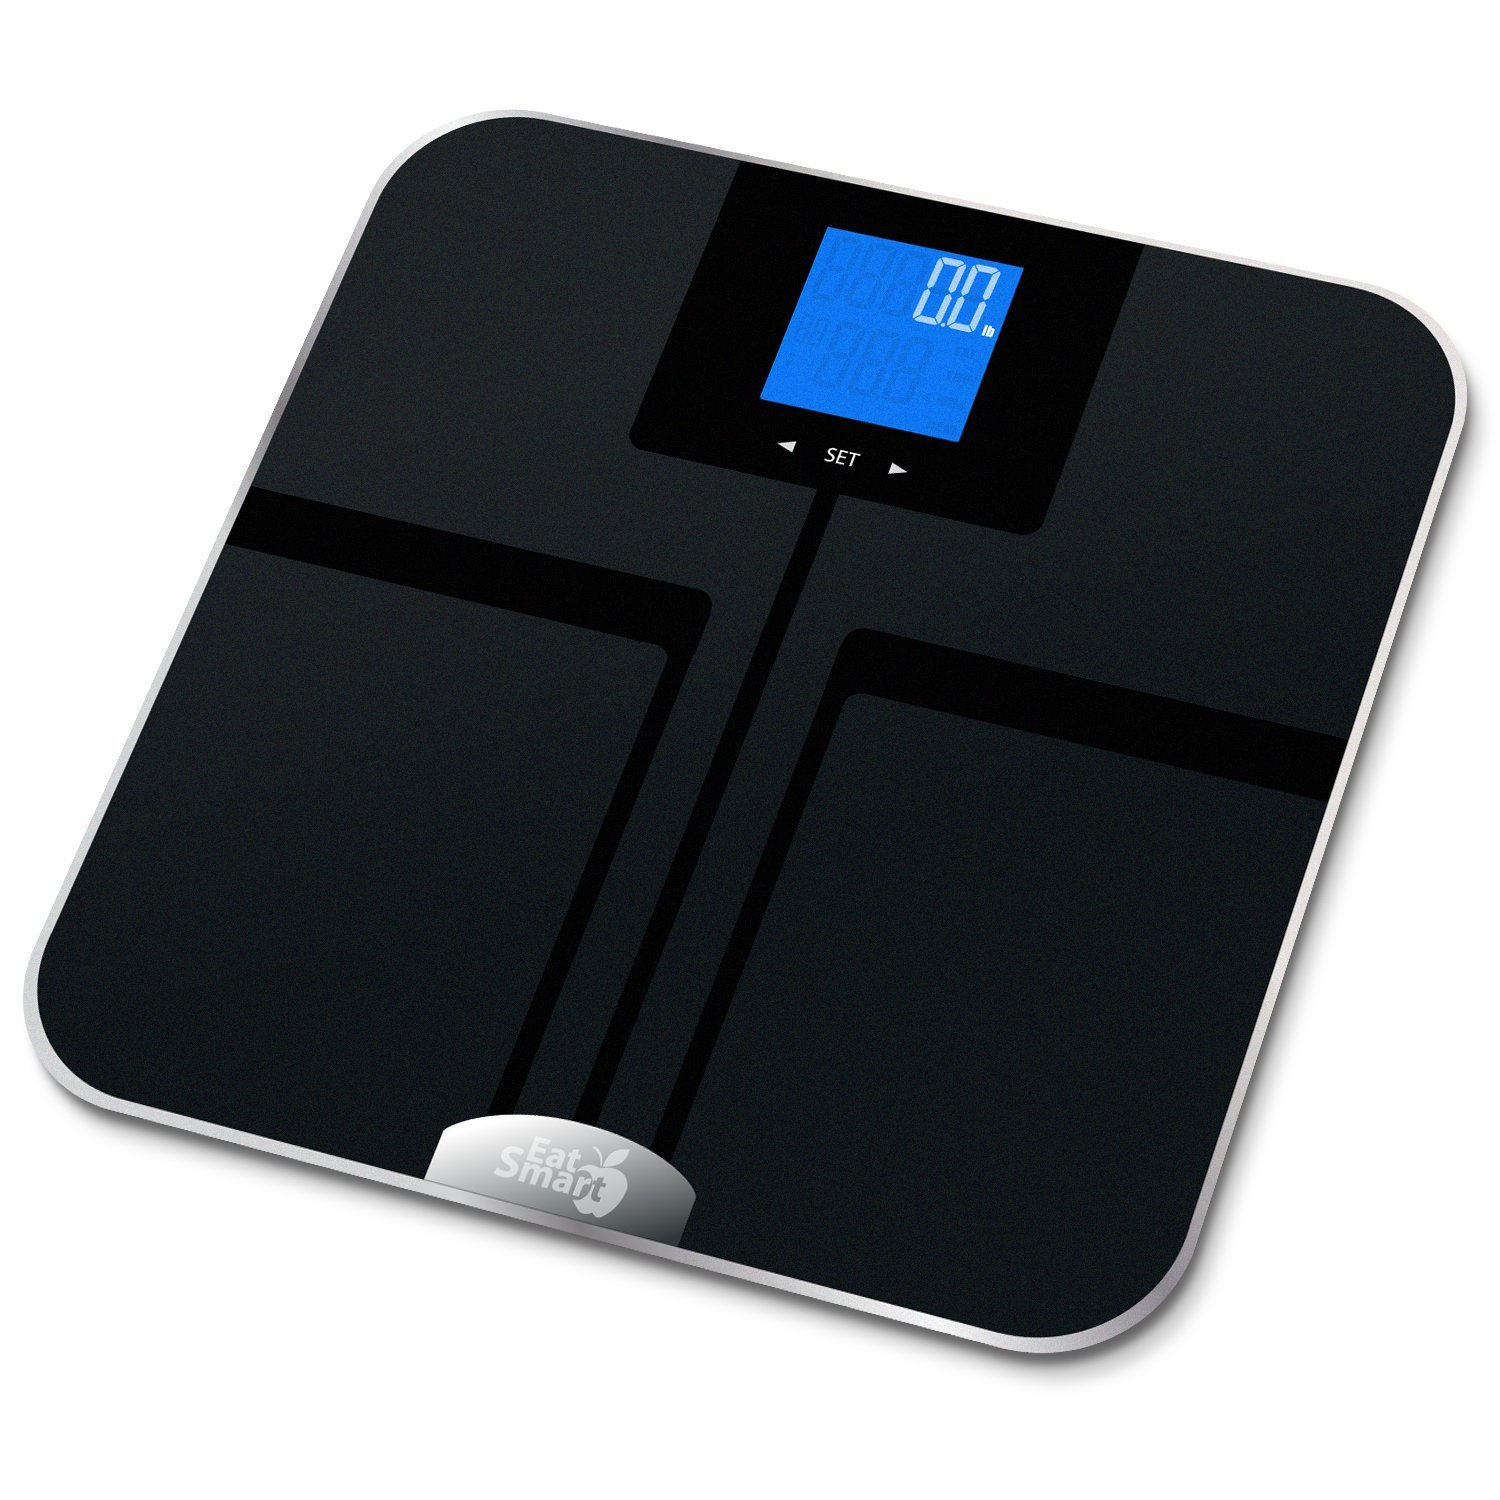 Headline for Best Body Fat Measuring Bathroom Scale - Ratings and Reviews 2017